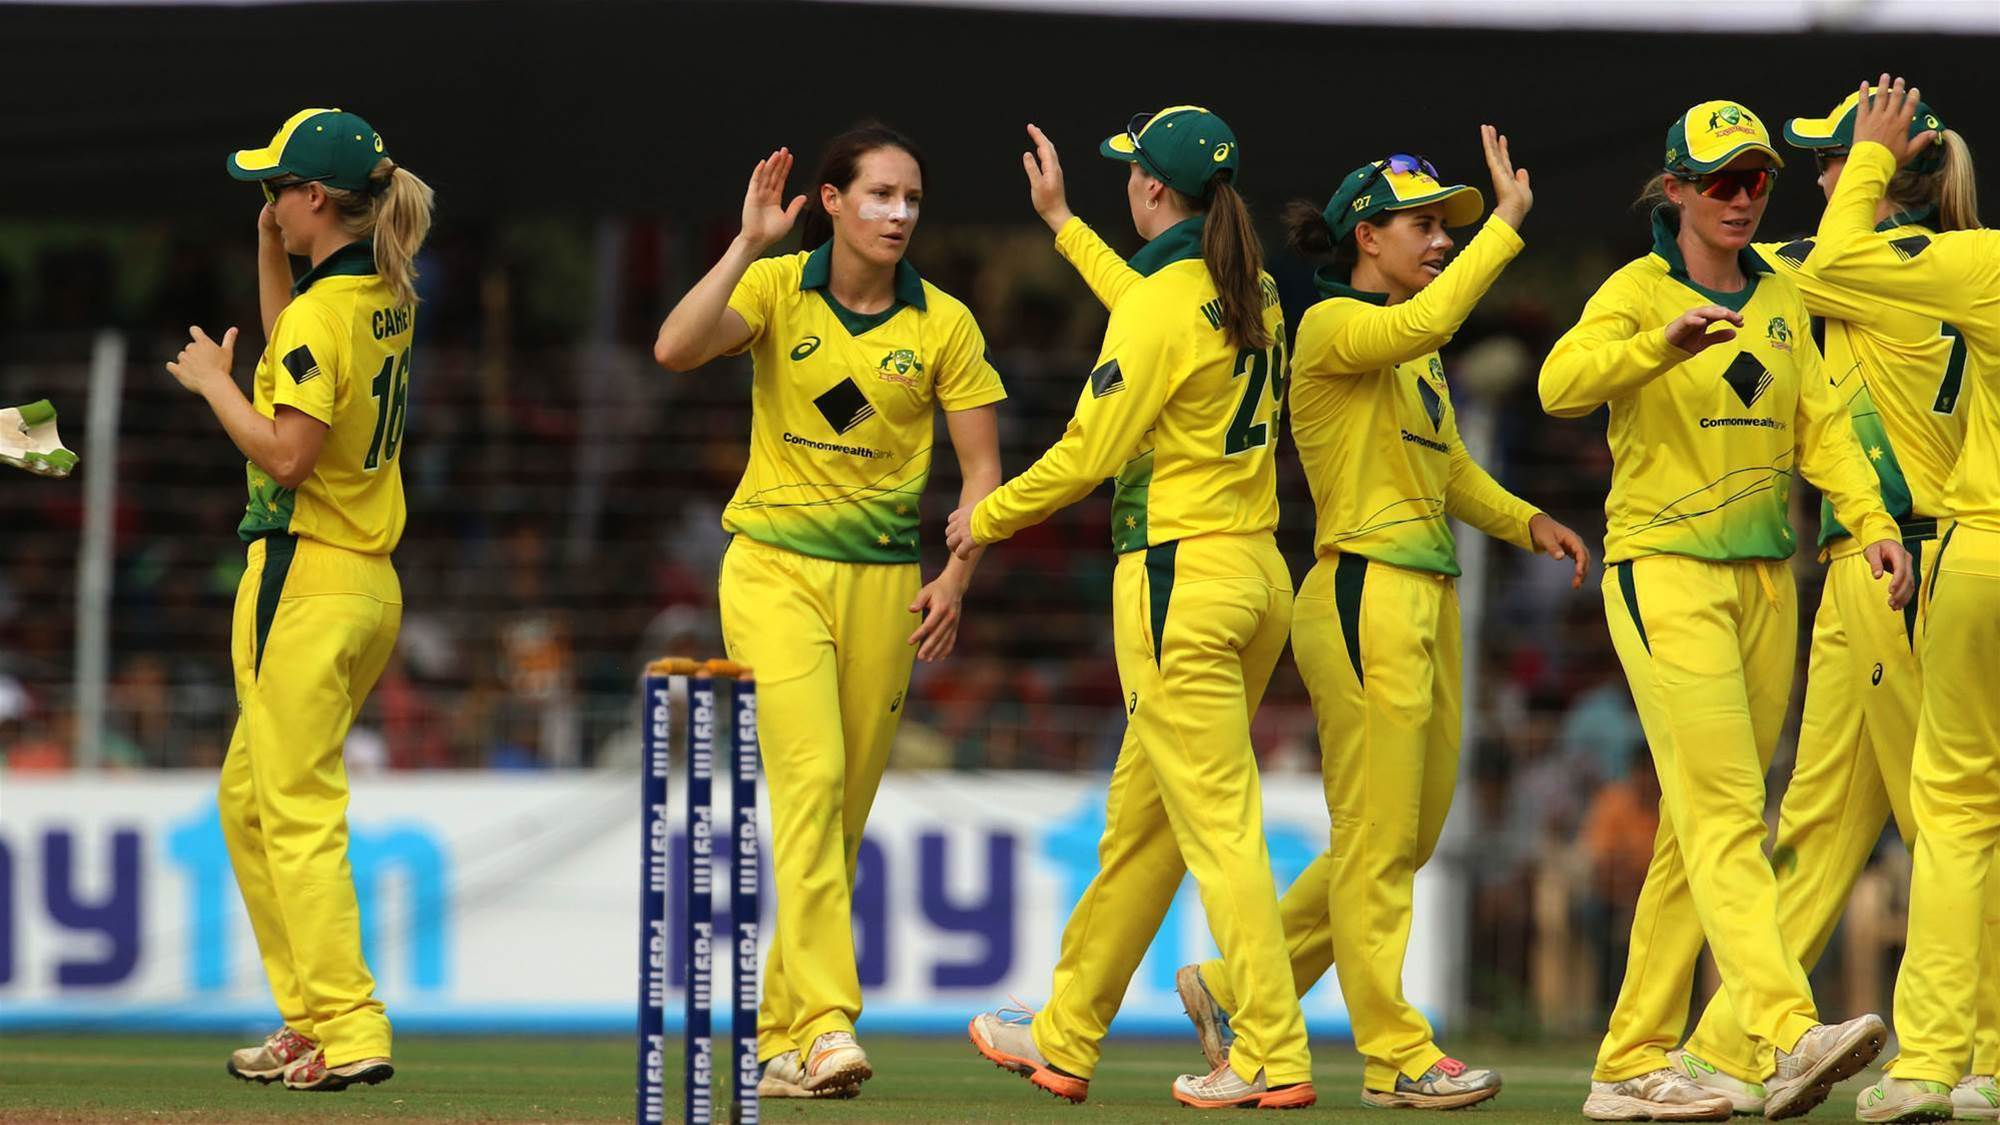 Australia's good form continues with a win in the first T20